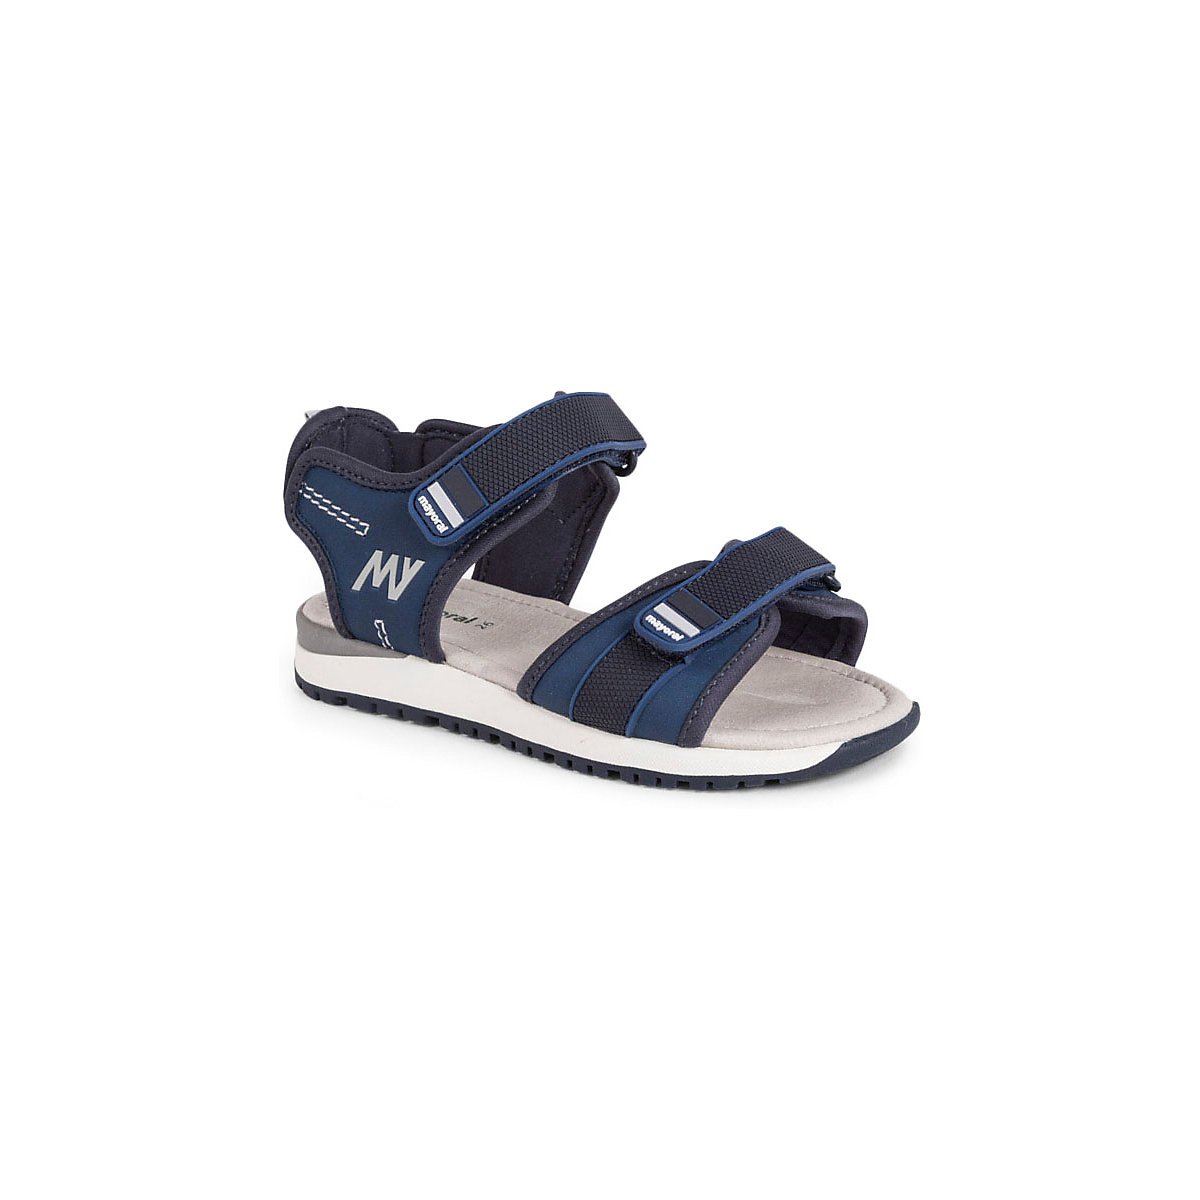 MAYORAL Sandals 10642726 children's shoes comfortable light summer Boys Blue Hook & Loop plain black satin bow high heels women sandals white gladiator shoes platform cover heel summer ankle cross strap party wedding shoes